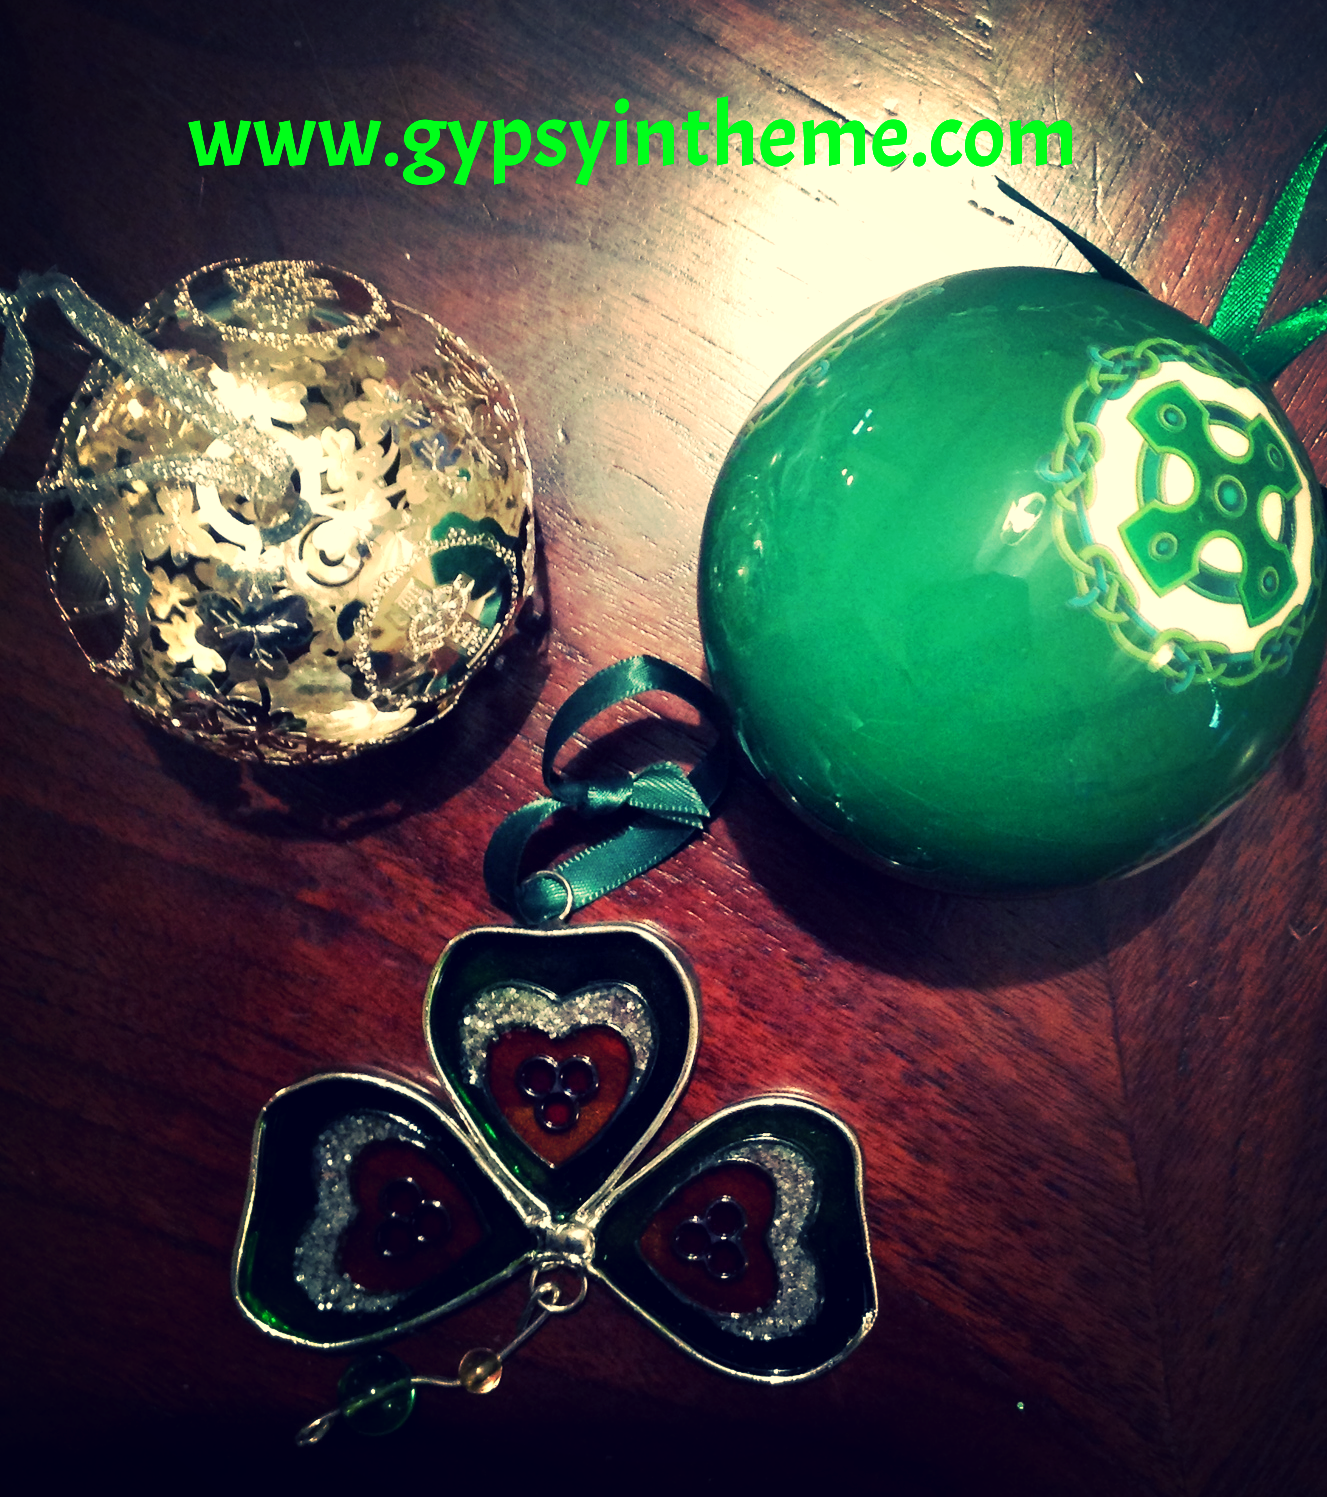 The silver hand-crafted ornament on the top left was a gift from Smilin' Vic on a trip to Ireland in 2009.  It kick-started the trend of buying a Christmas memento in every port.  The other two were bought when we toured South-Western Ireland last summer.